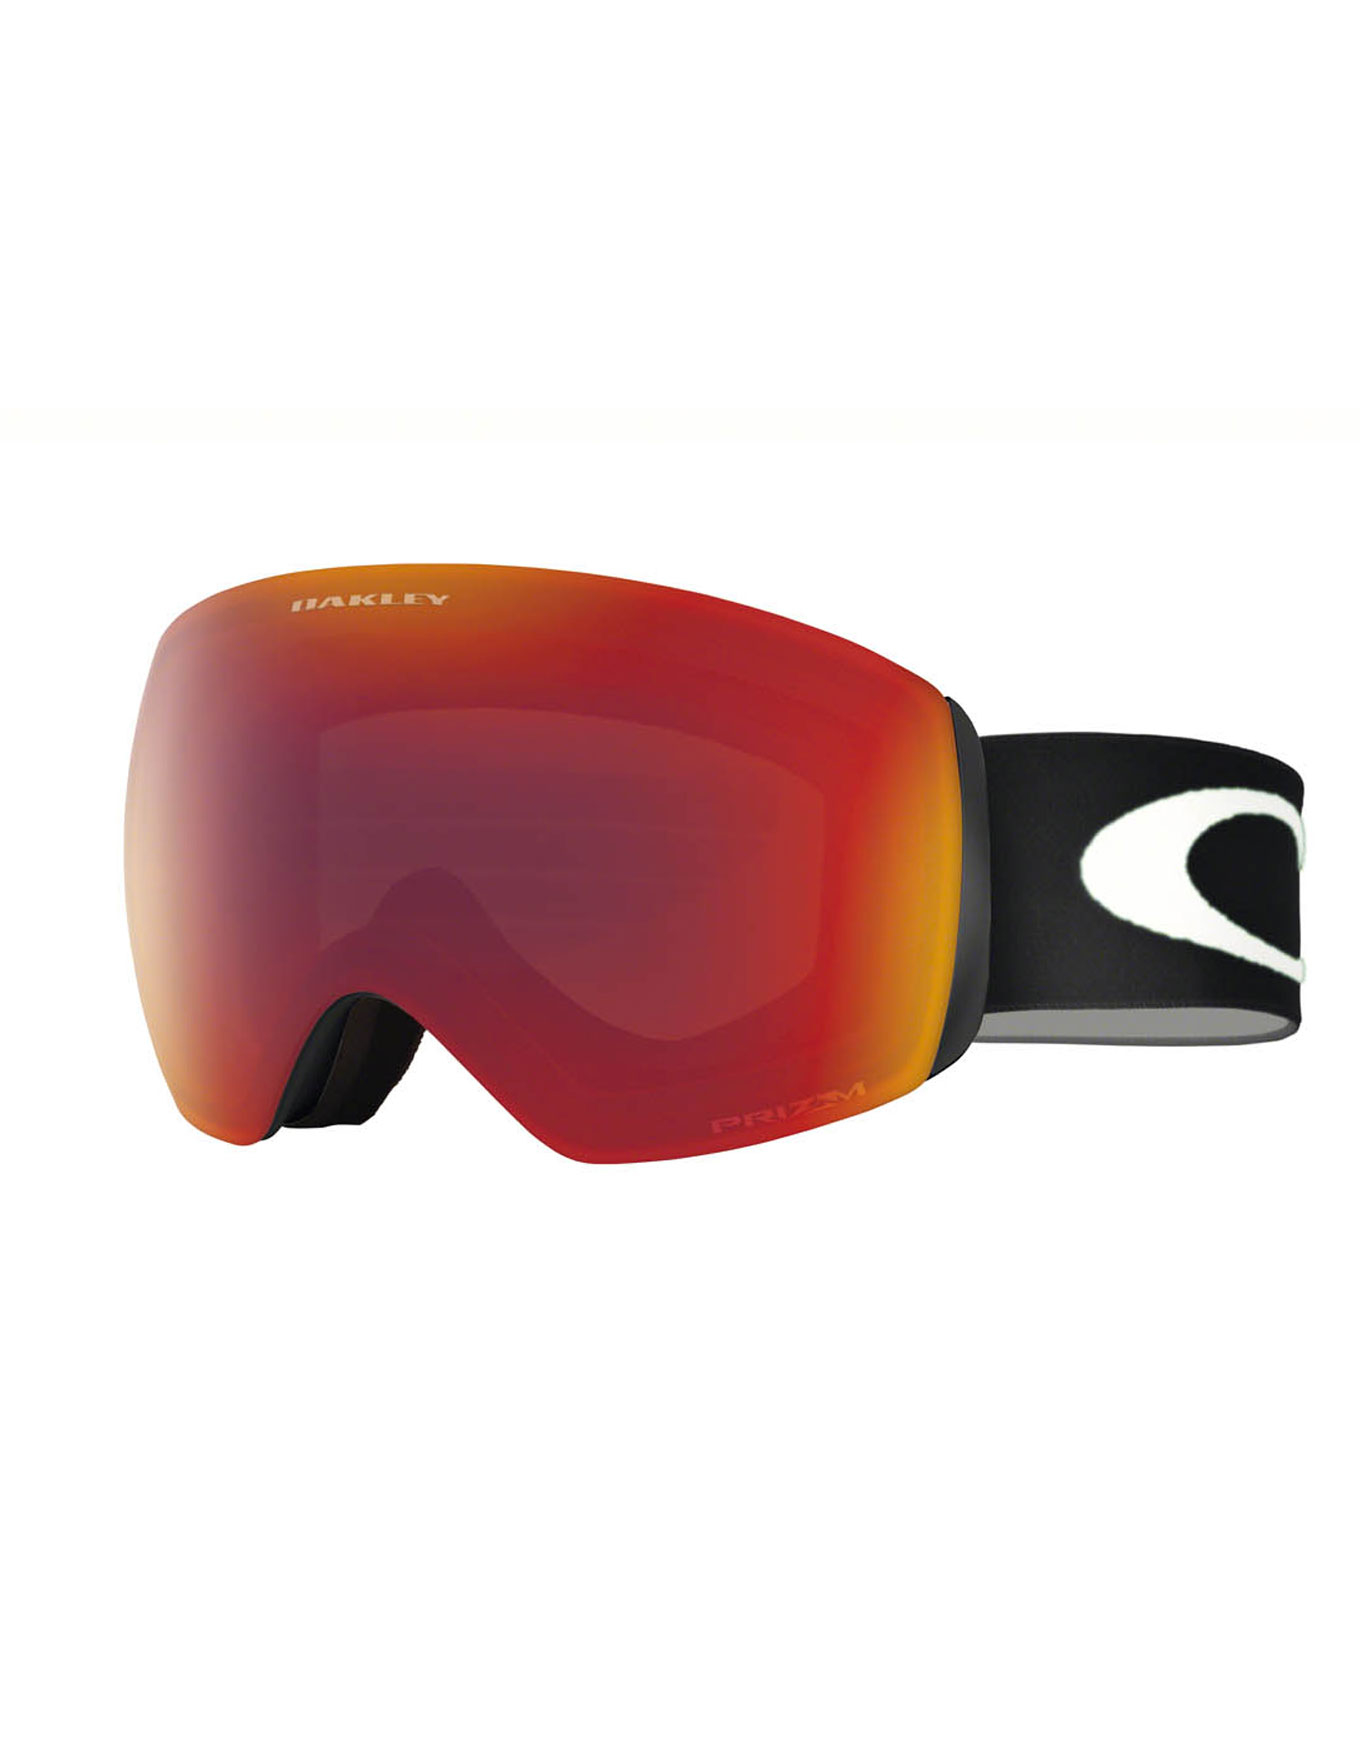 Flight Deck XM Matte Black Prizm Torch Oakley   Masques de Ski ... f6a20f56d805